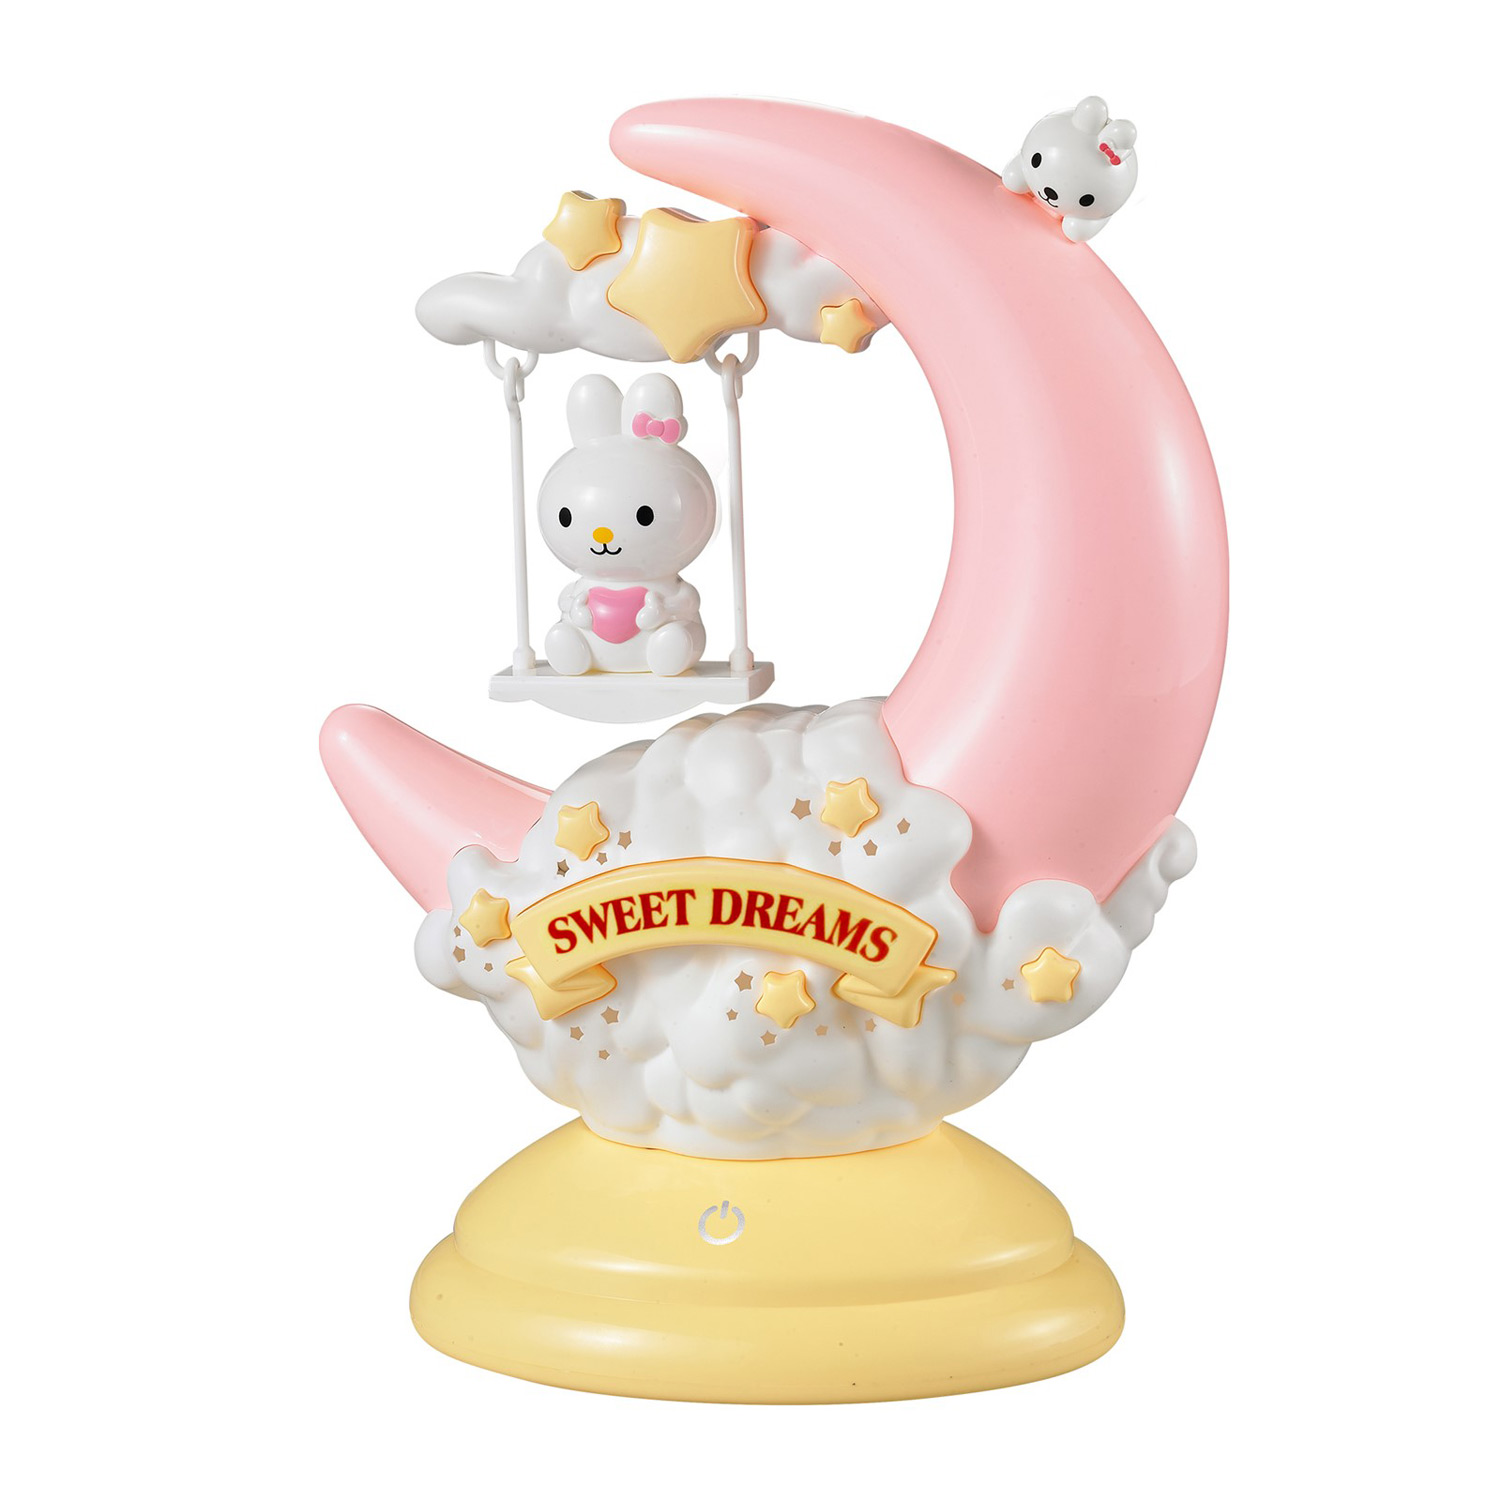 "Kids 11"" Night Light Cute Bunny Rabbit On Movable Half Moon Swing With Touch Sensor LED And Yellow Dim Option Portable Lamp Good Sleep Perfect Nightlight Gift For Girl Boy Infant Toddler Baby"